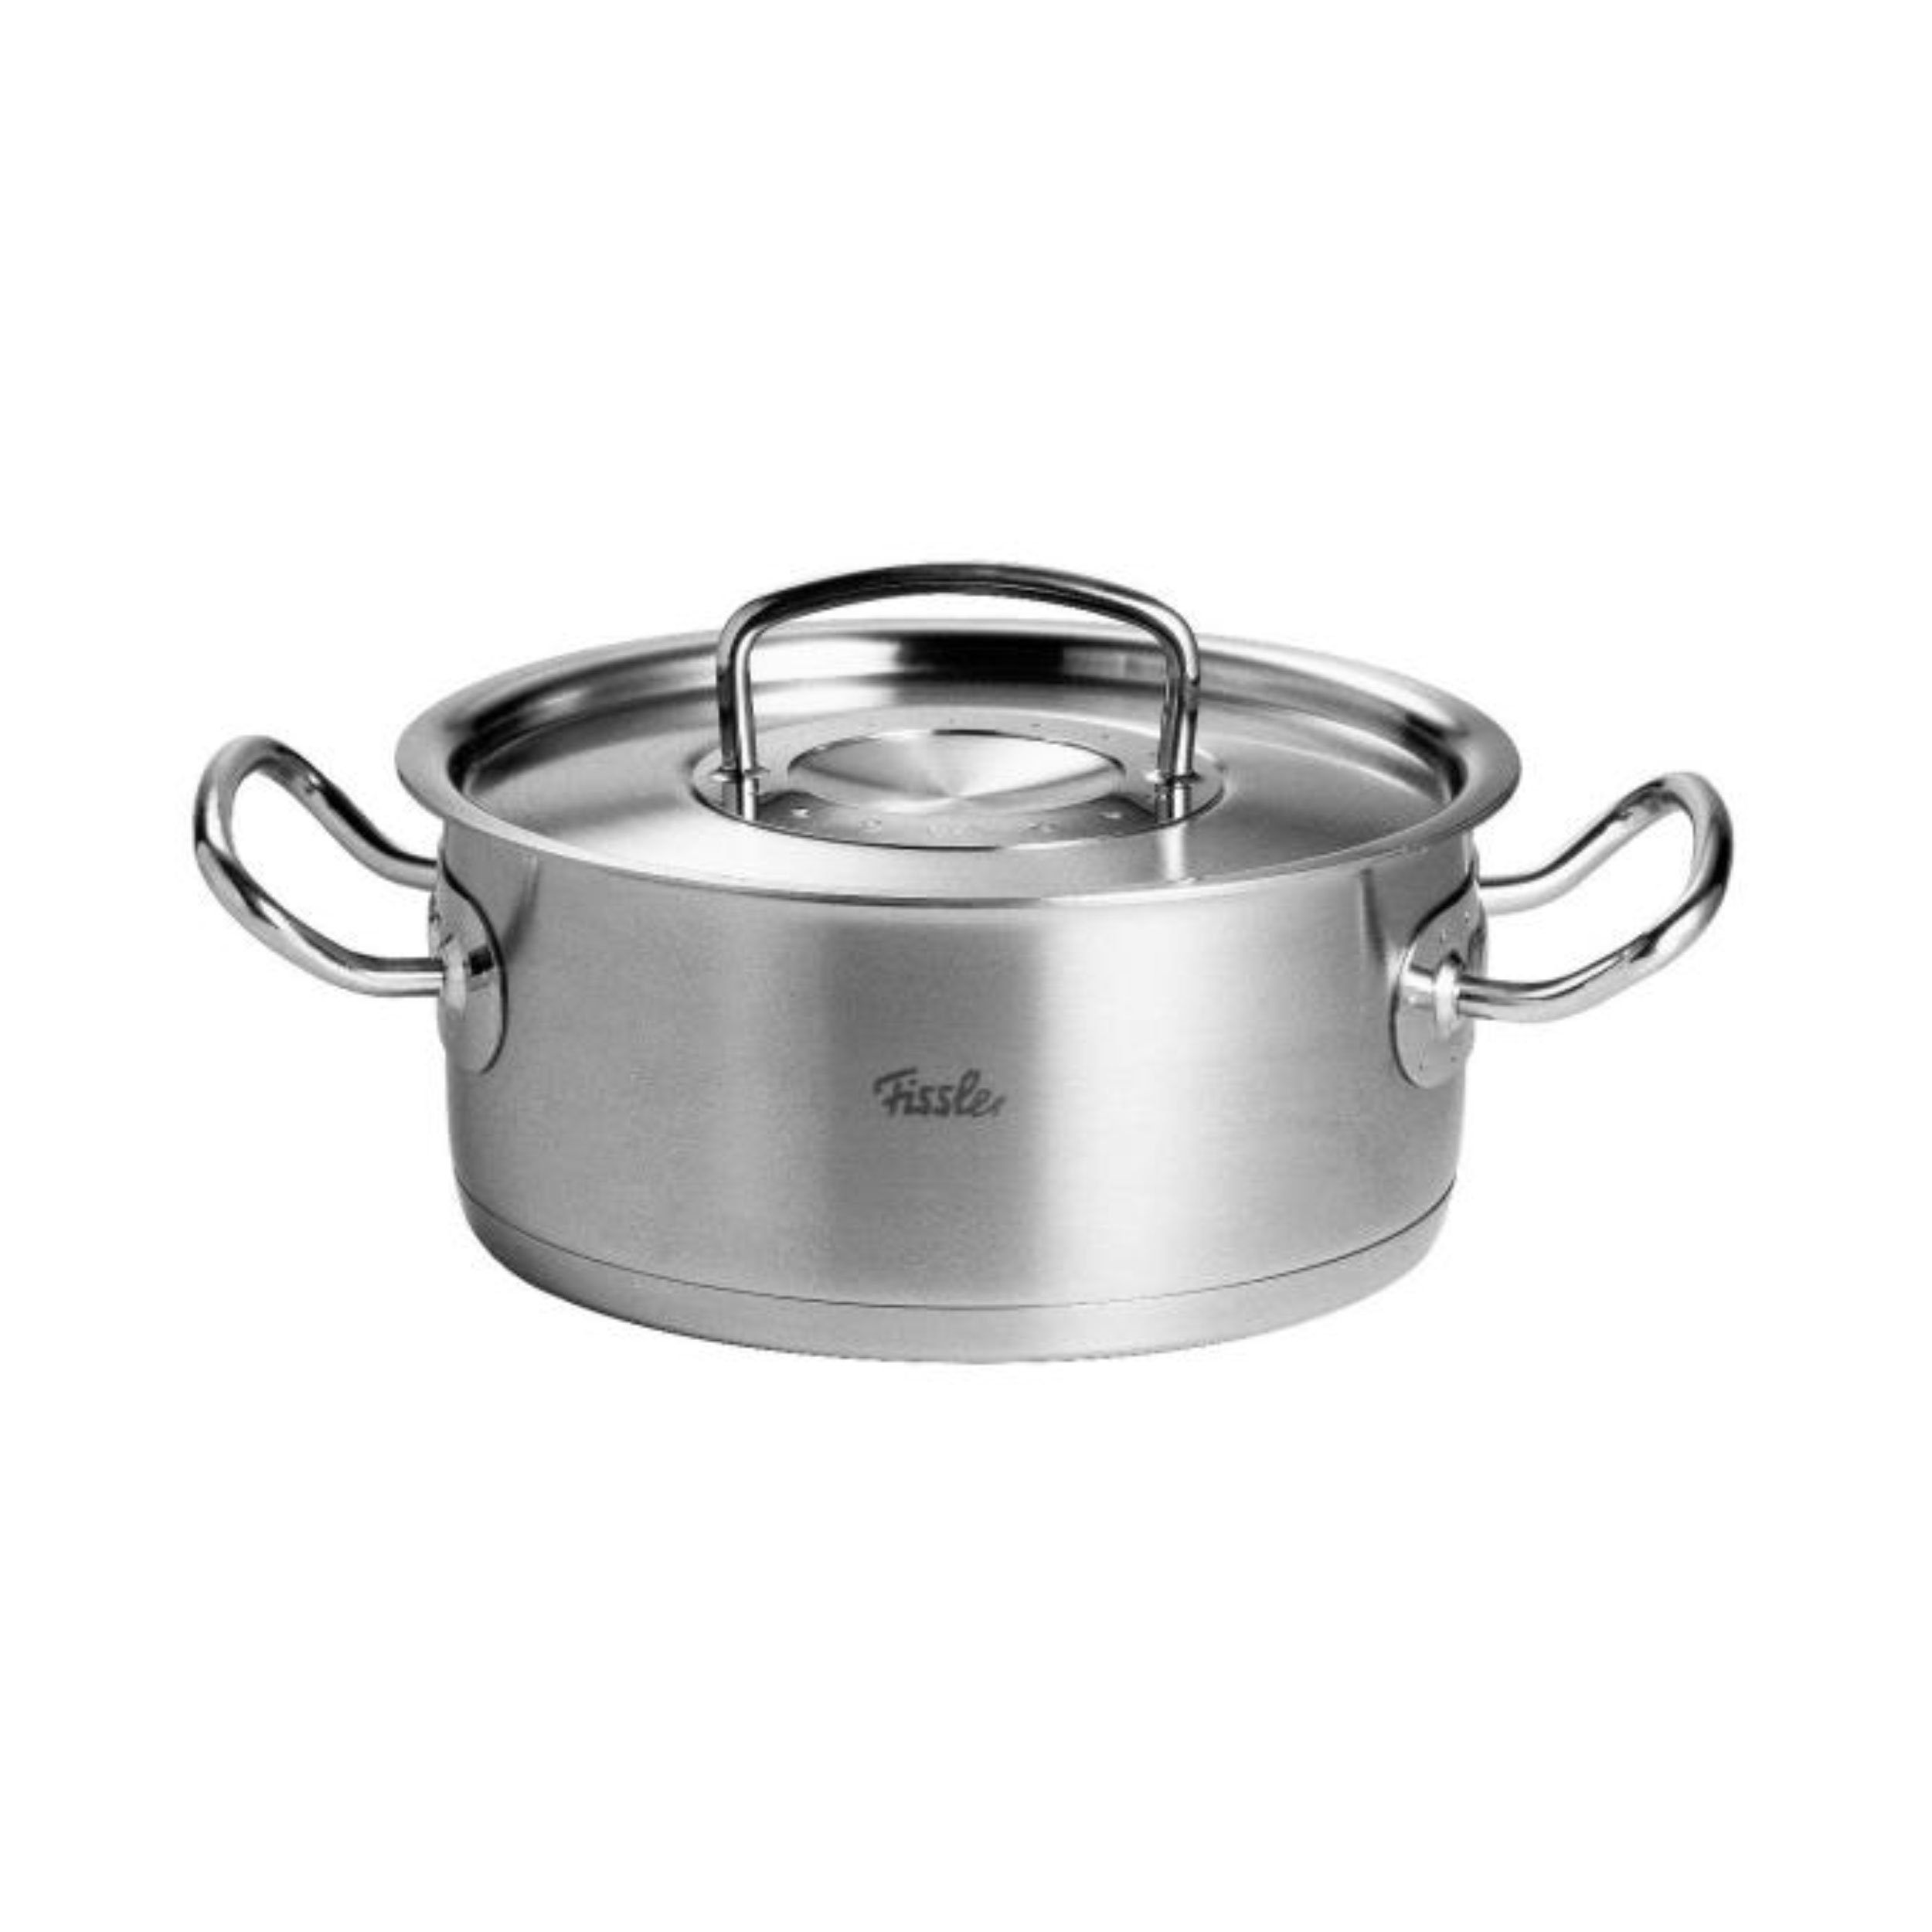 Fissler Original Pro Collection Casserole - 4.9 qt.